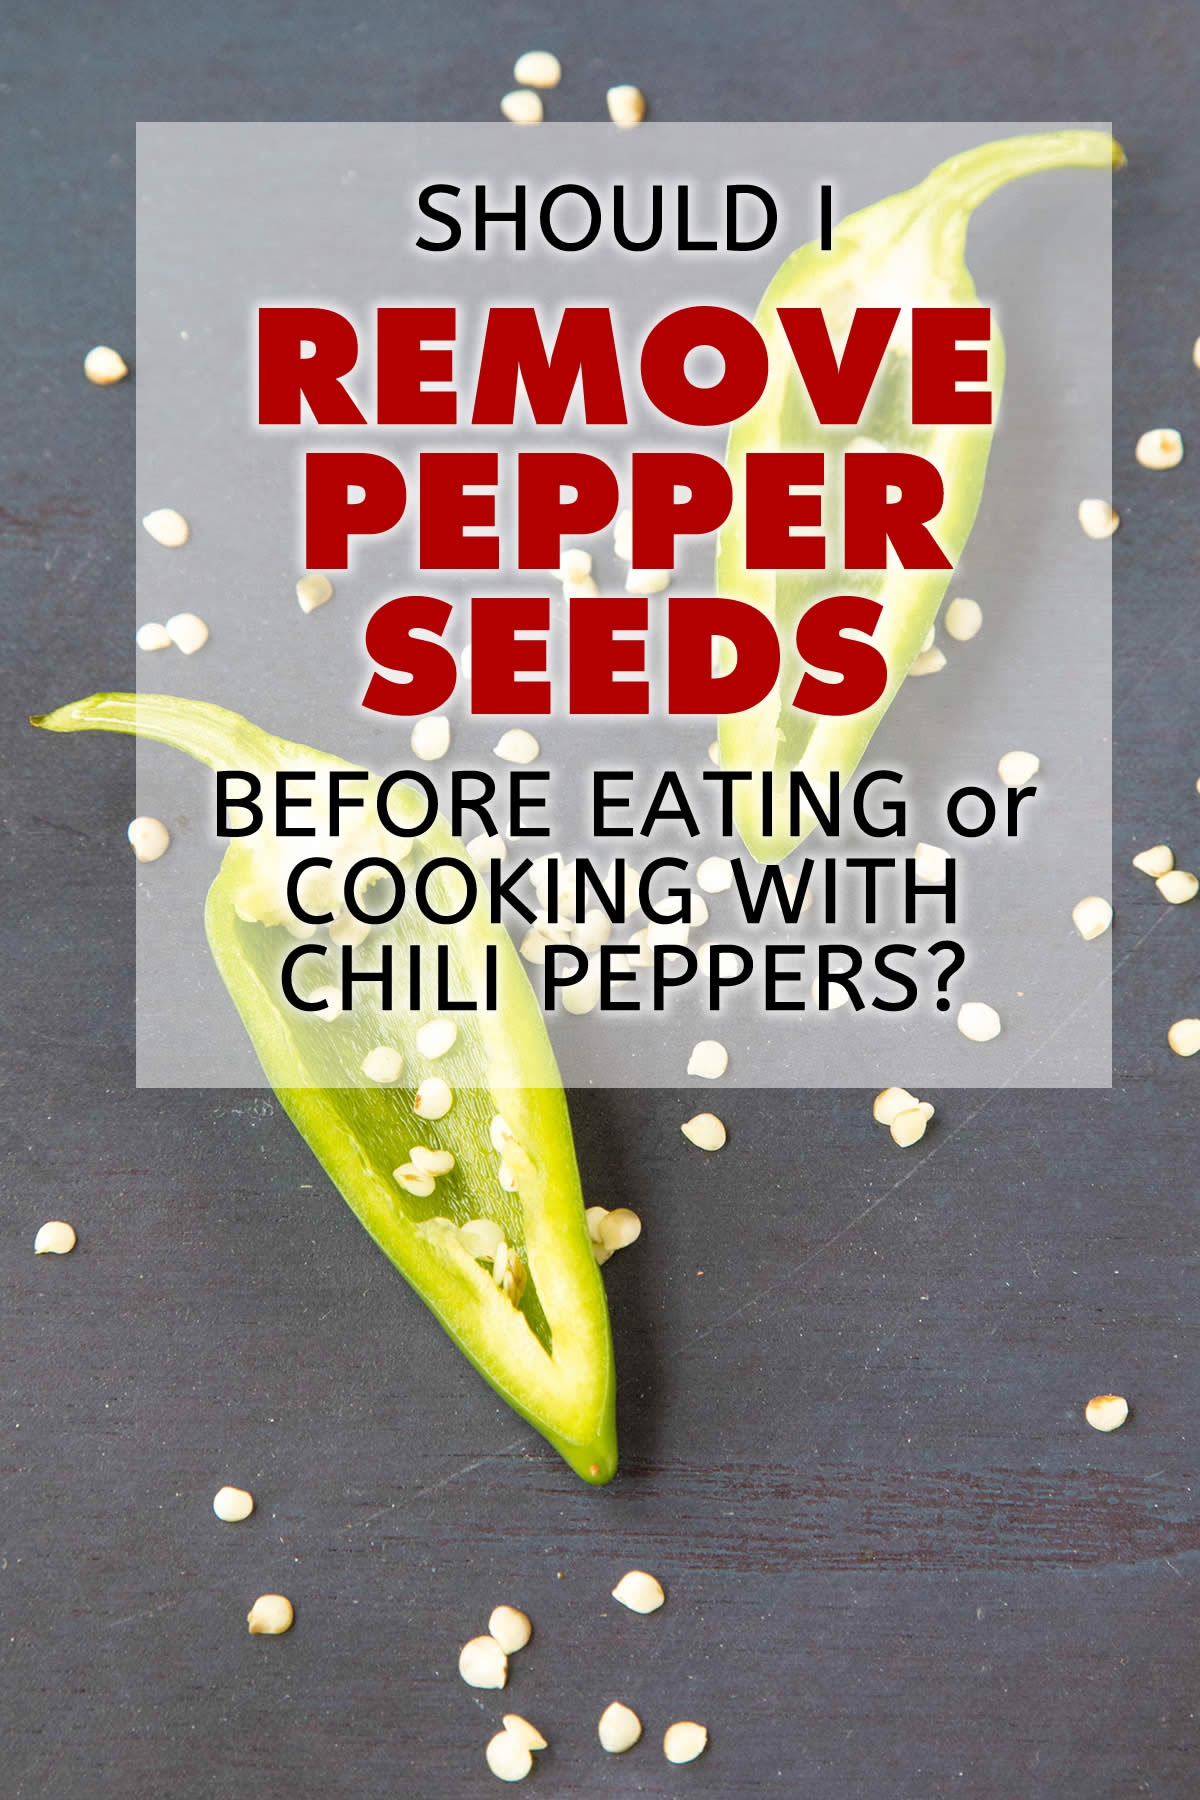 Should I Remove the Seeds Before Eating or Cooking with Chili Peppers?